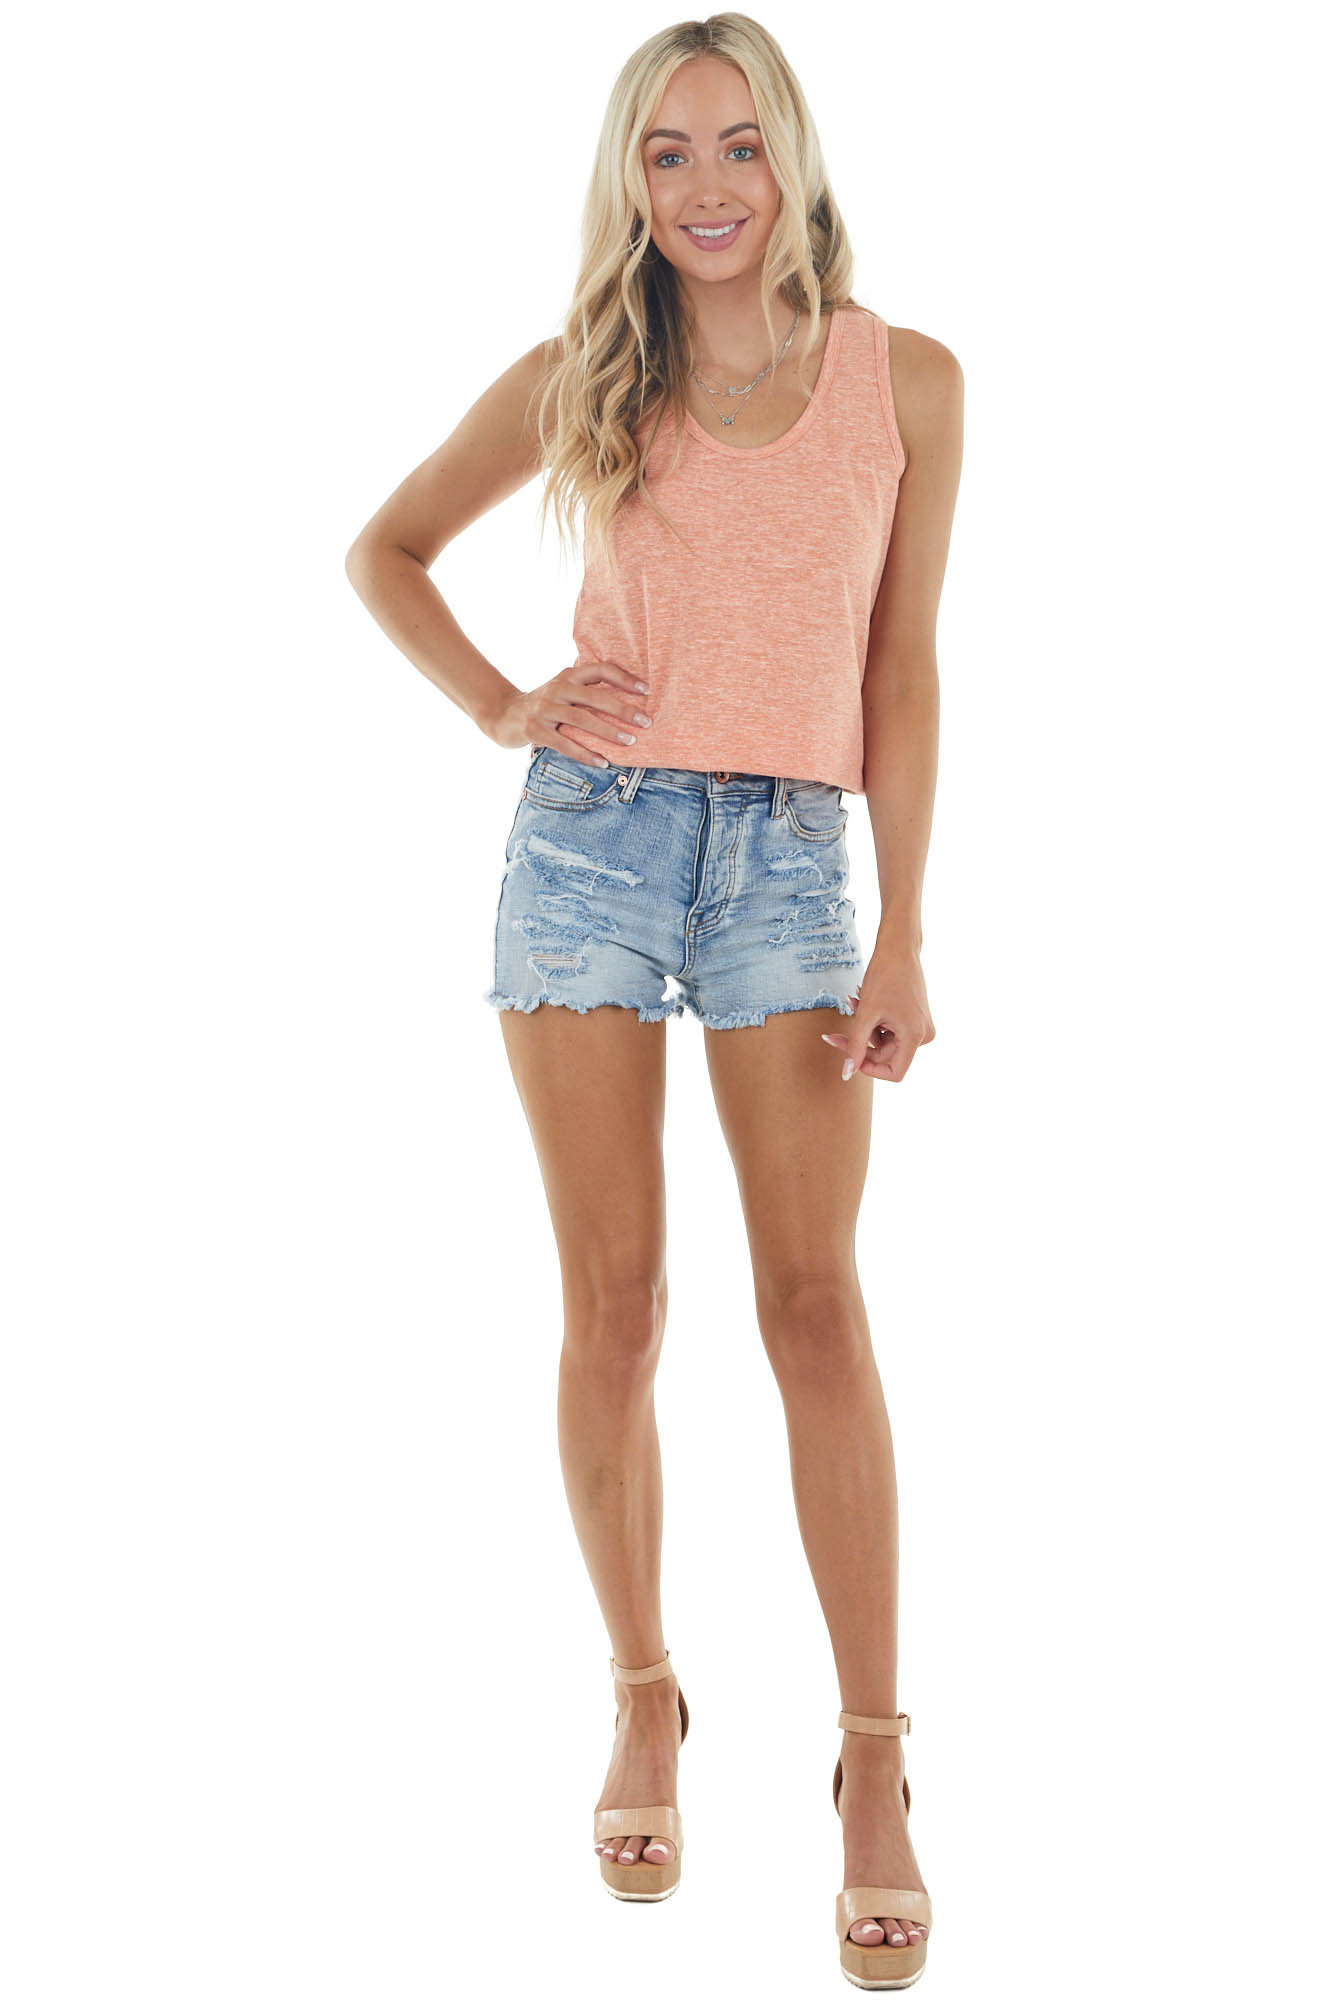 Heathered Salmon Knit Tank Top with Double Strap Back Detail